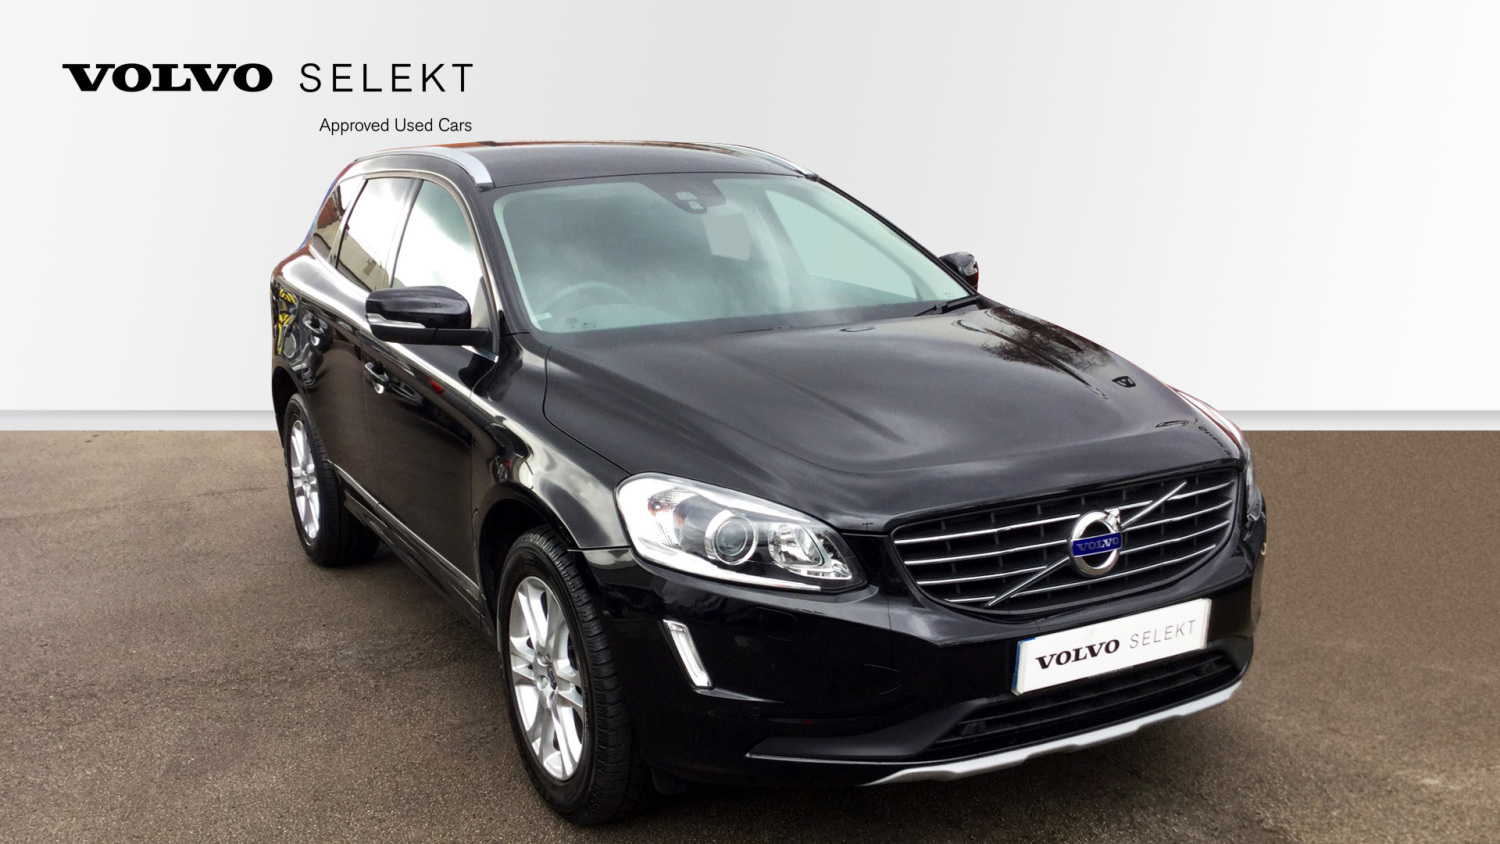 used volvo xc60 d5 220 se lux nav 5dr awd geartronic diesel estate for sale in scotland. Black Bedroom Furniture Sets. Home Design Ideas